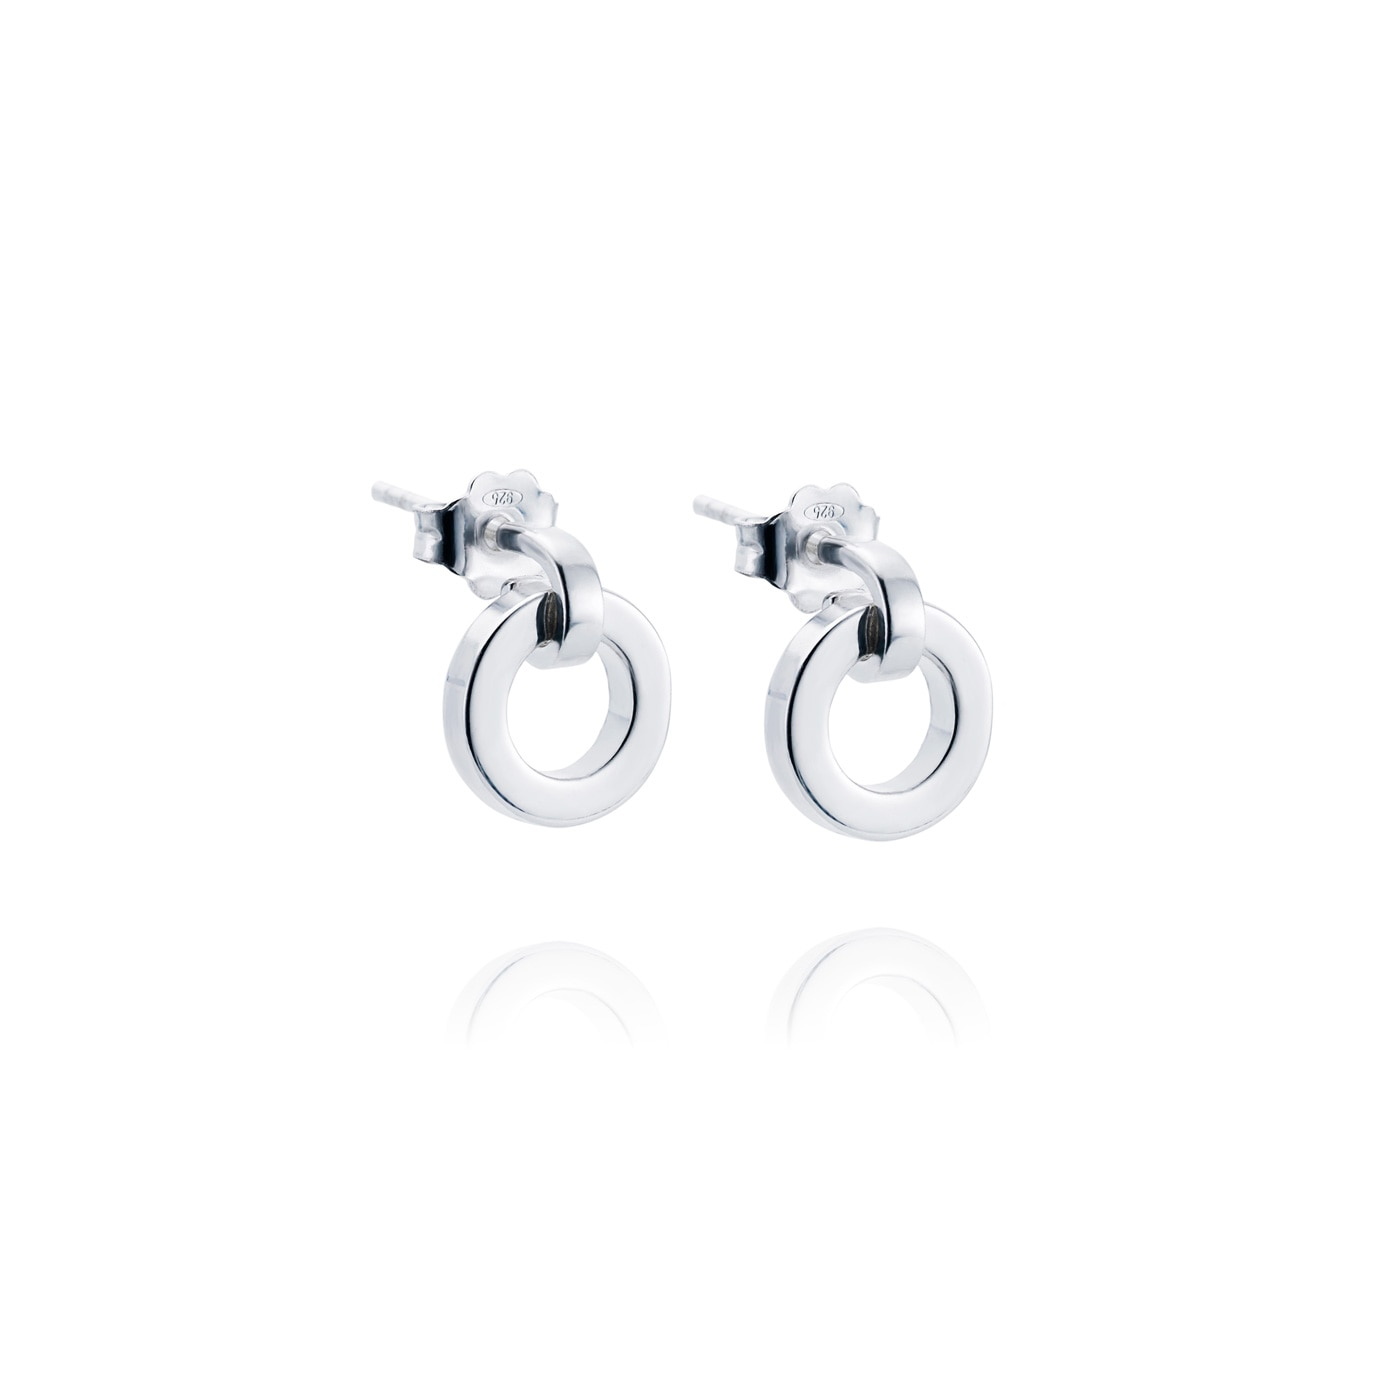 Ring-Around-Earrings-12-100-00553(1)